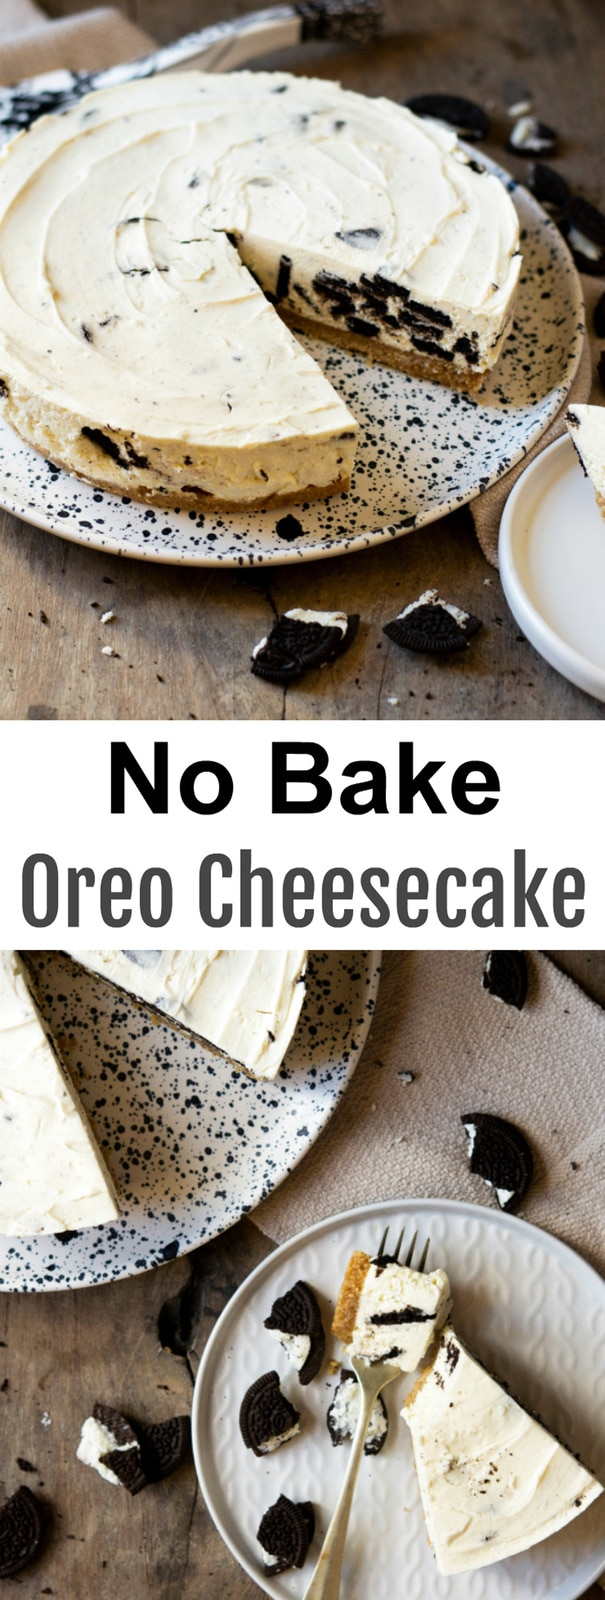 No Bake Oreo Cheesecake. Rich, creamy, just like a regular cheesecake! This cookies and cream flavored cheesecake is eggless and no bake!